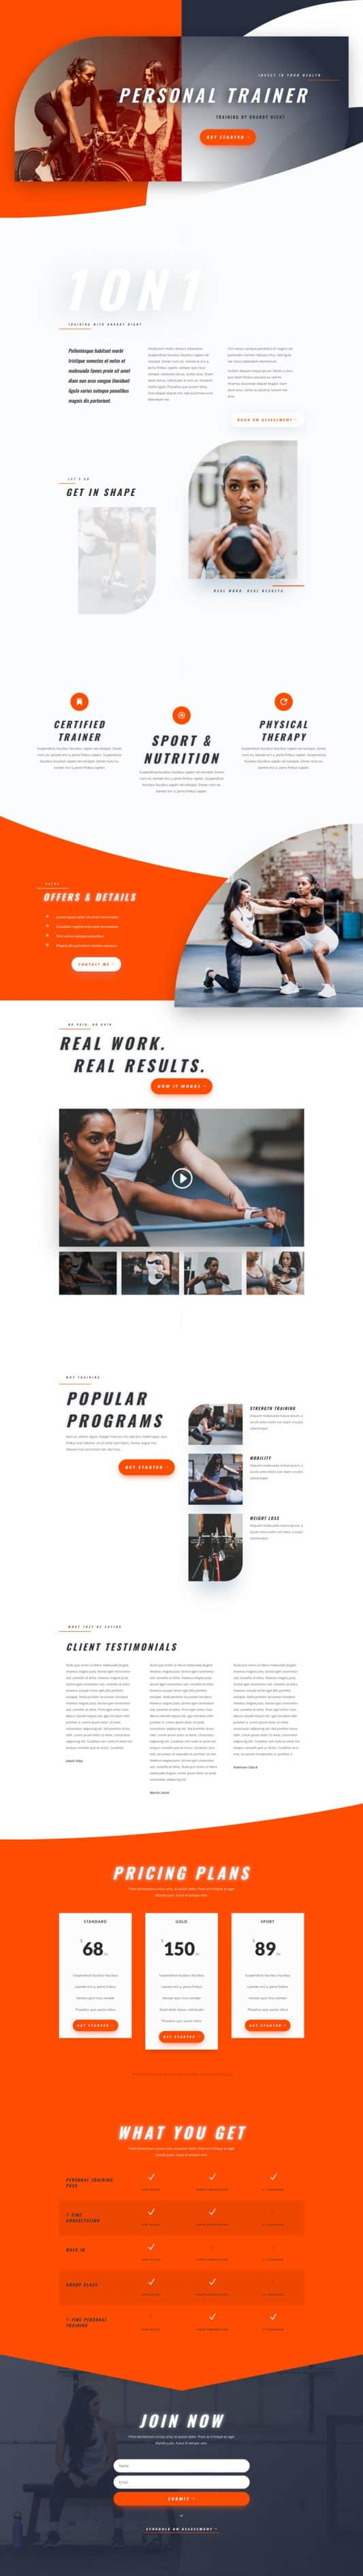 Personal Trainer Landing Page Style 1